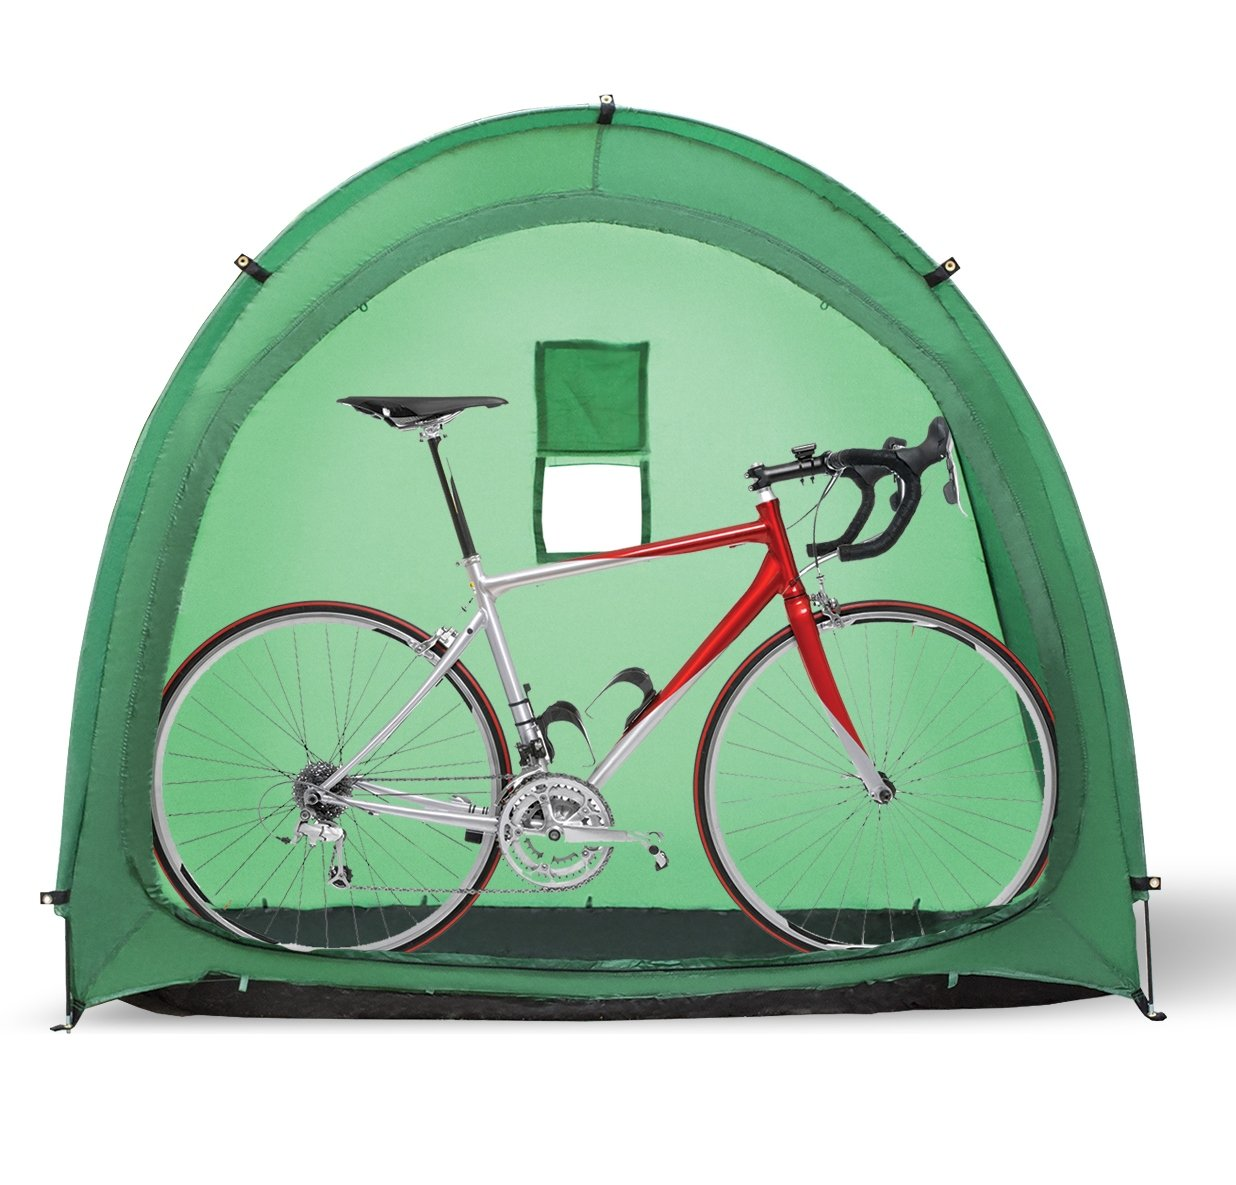 Bike Tent Outdoor Portable Garage Shed Bicycle Storage Space Saver Garden Tools Storage and Pool Storage (Green) (Green) Wealers